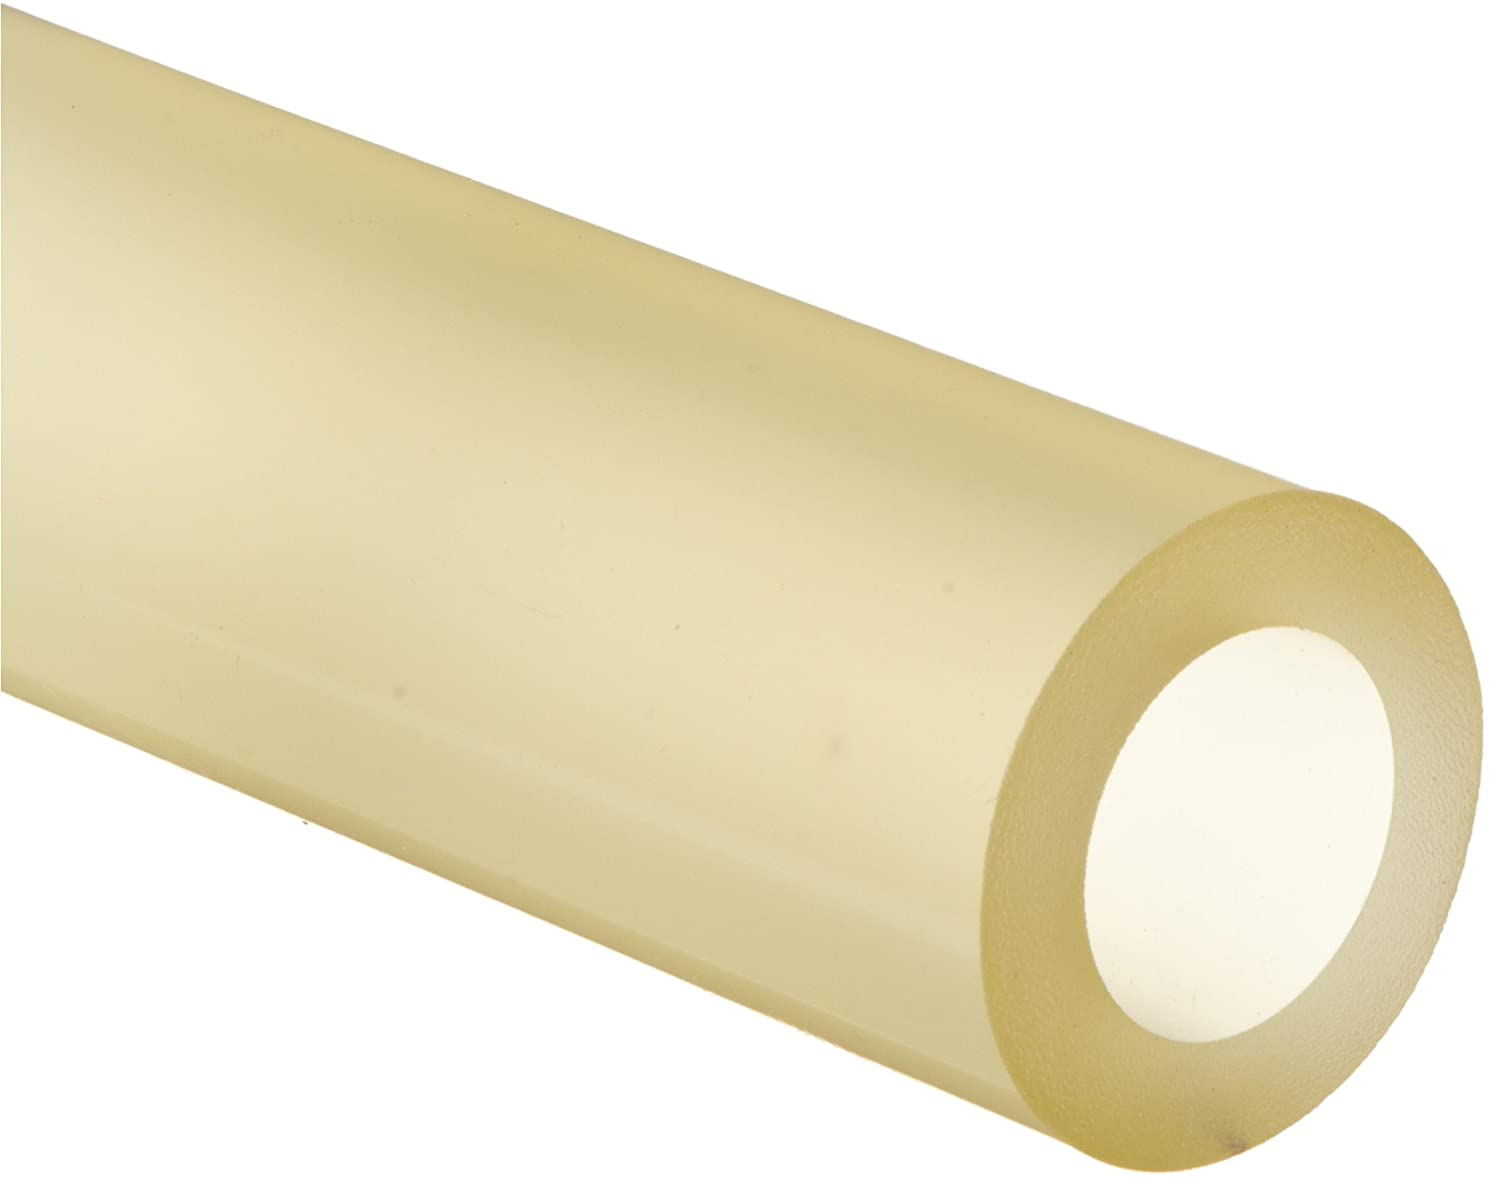 6 Length 4 OD 3 ID 1//2 Wall Thickness 6 Length Small Parts URE40ANTU03000x004000x0006000 Polyurethane 4 OD PUR Amber 3 ID Hollow Round Rod 40 Shore A ASTM D624 1//2 Wall Thickness